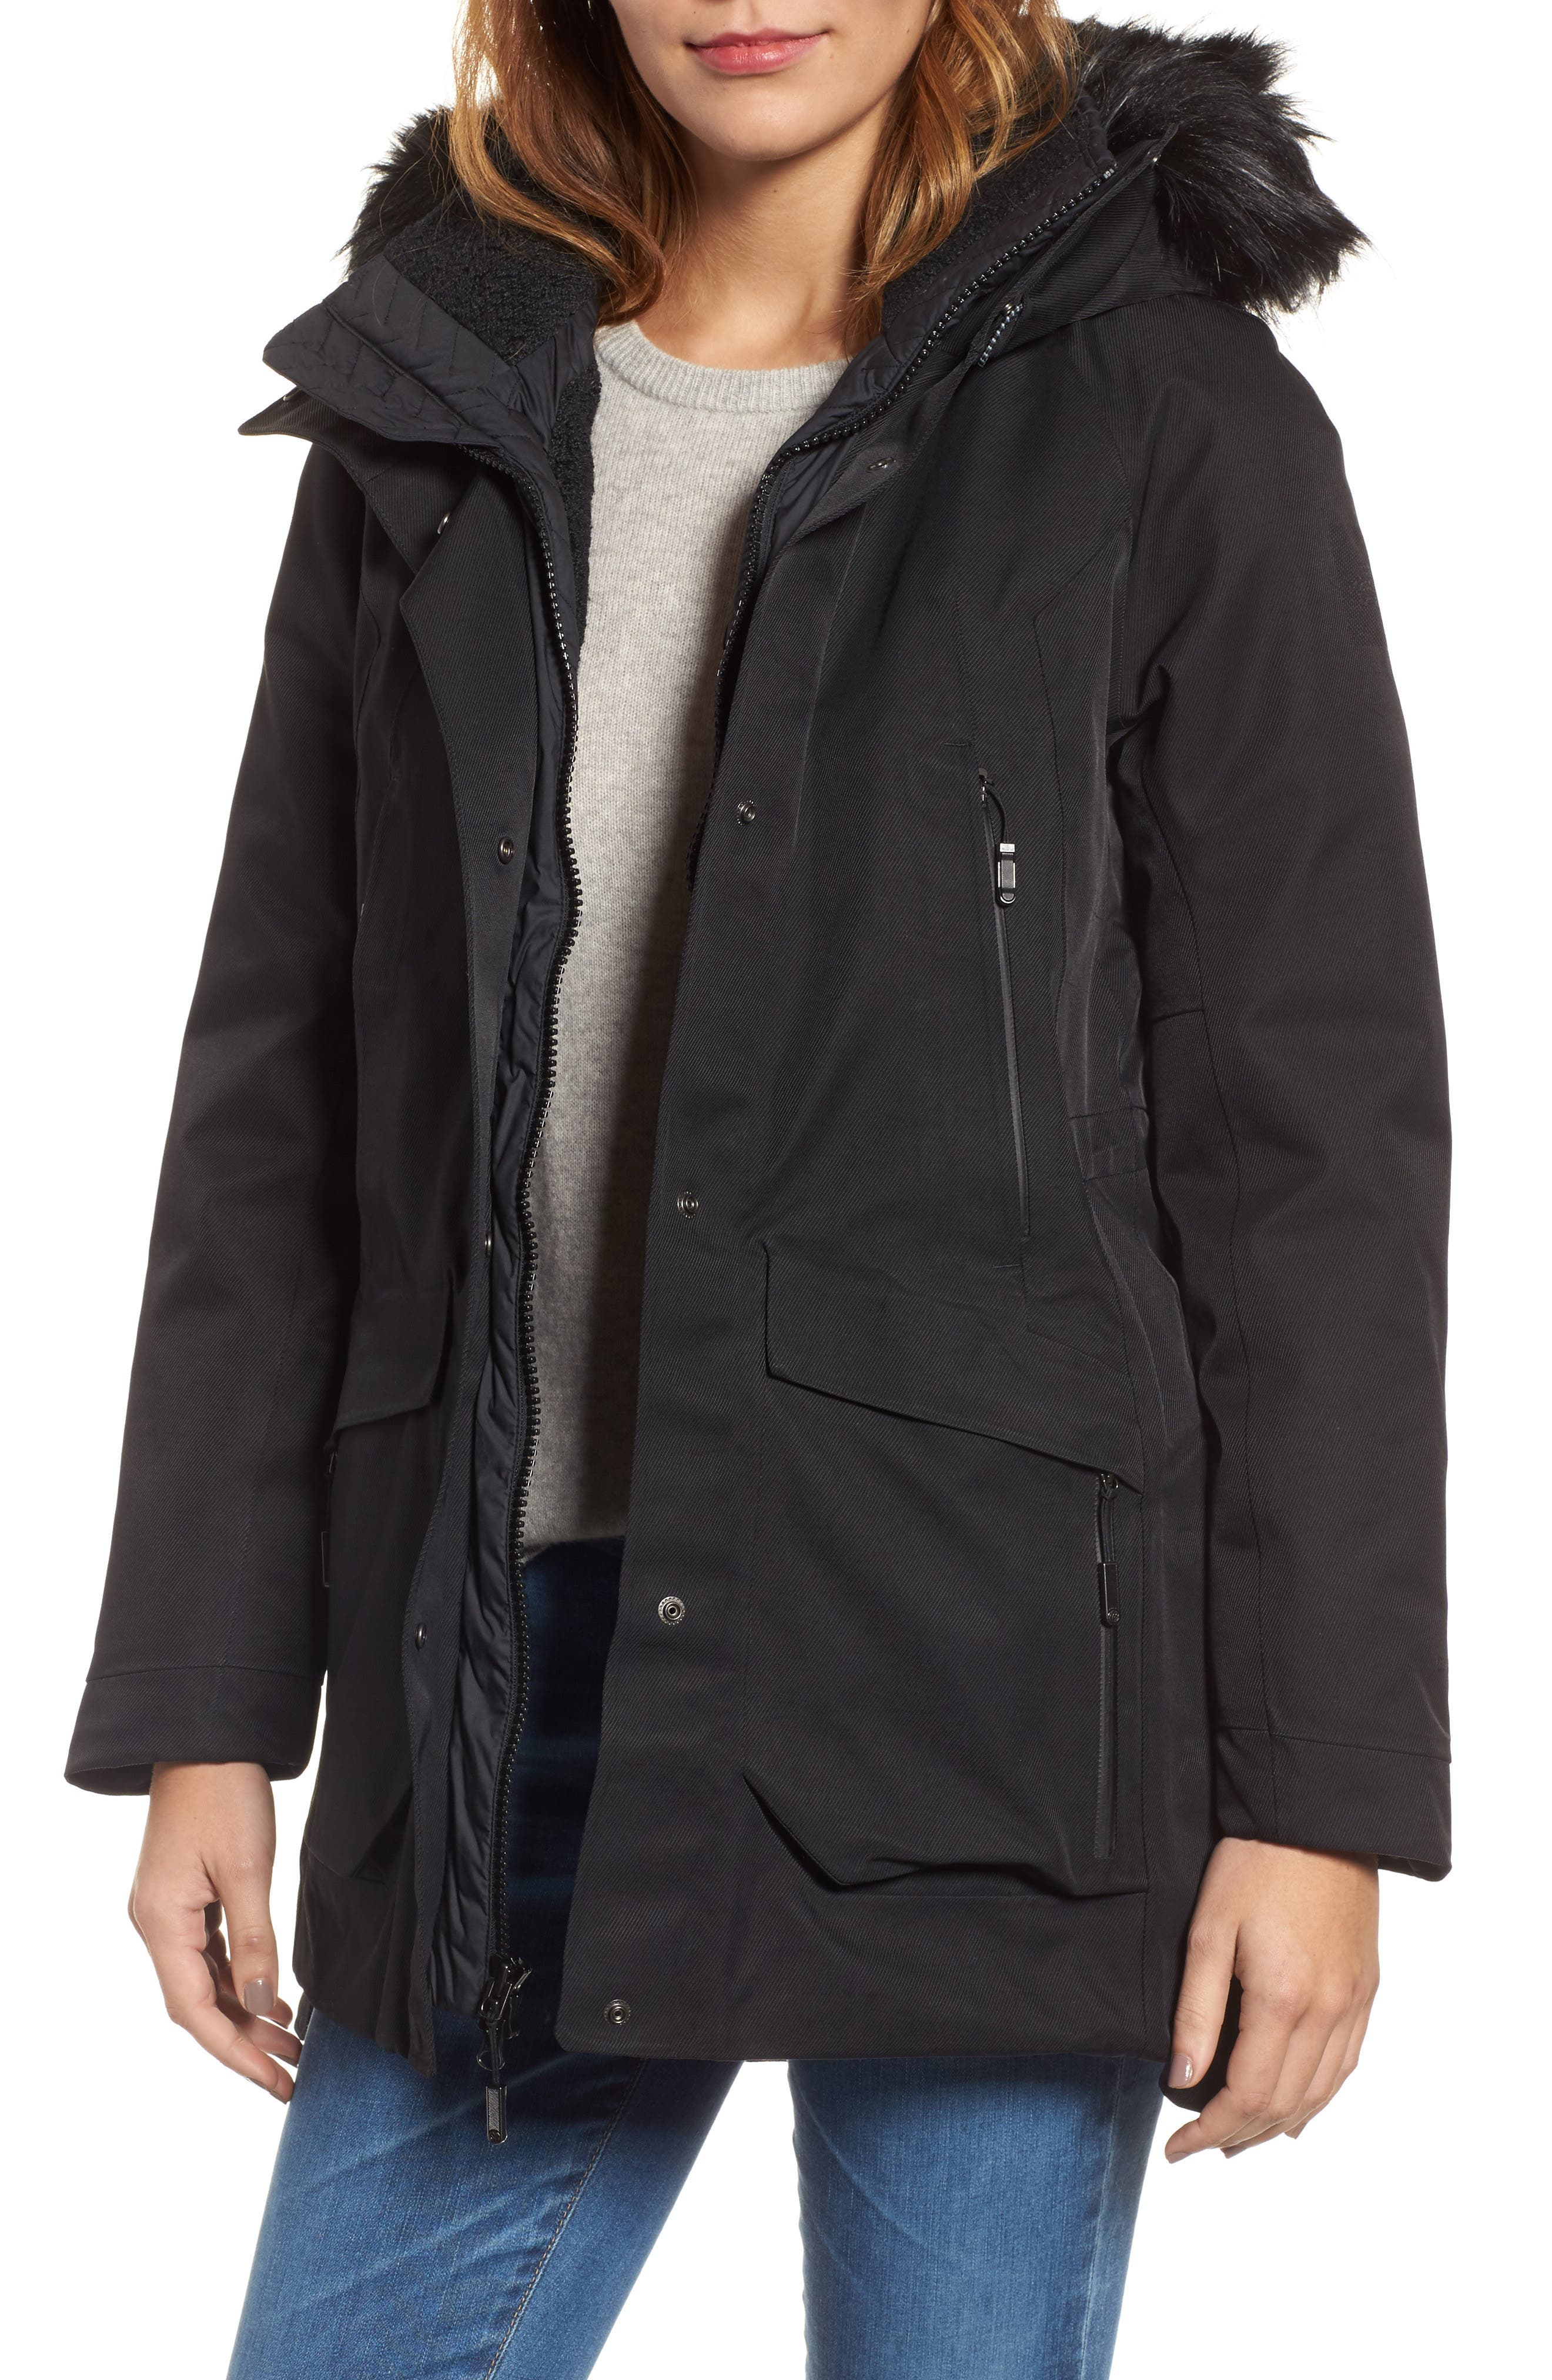 Cryos Gore-Tex<sup>®</sup> Tri-Climate PrimaLoft Gold Insulated Waterproof & Windproof Jacket,                         Main,                         color, 001